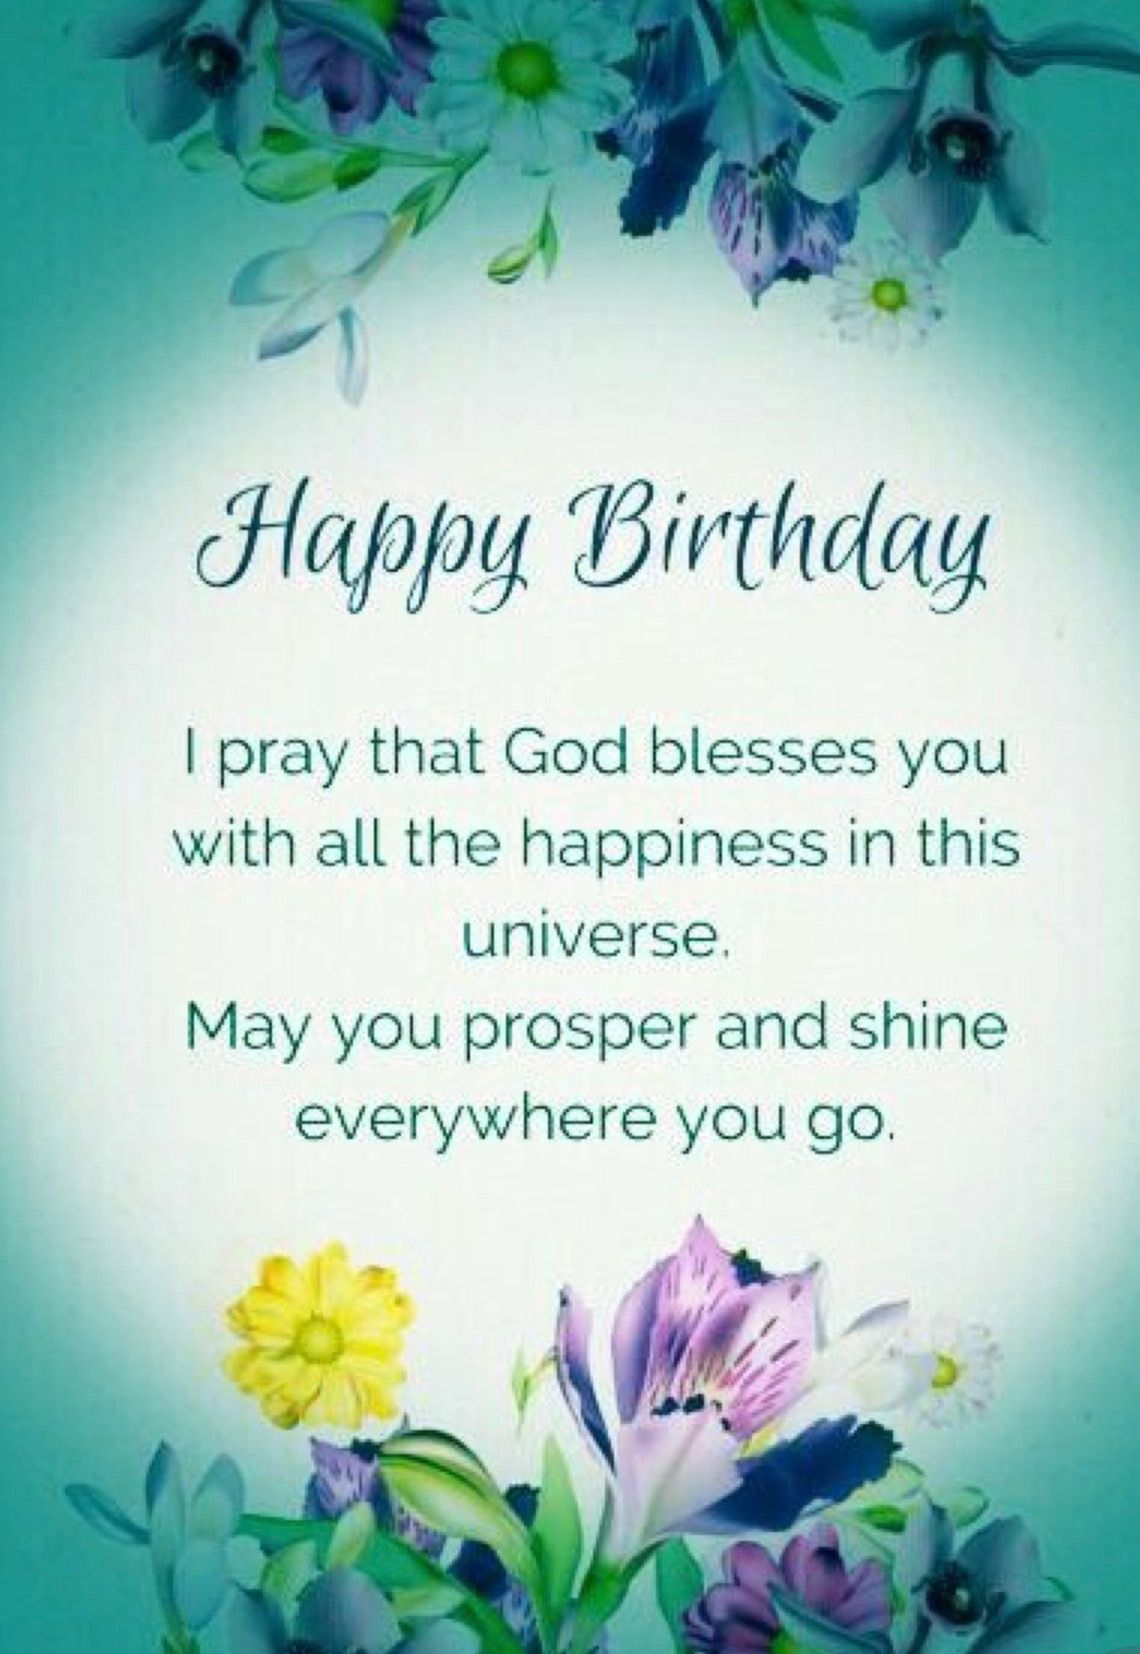 Pin By Karen Worthington On Anniversary Birthday Holidays Quotes Happy Birthday Wishes Quotes Happy Birthday Wishes Cards Happy Birthday Prayer